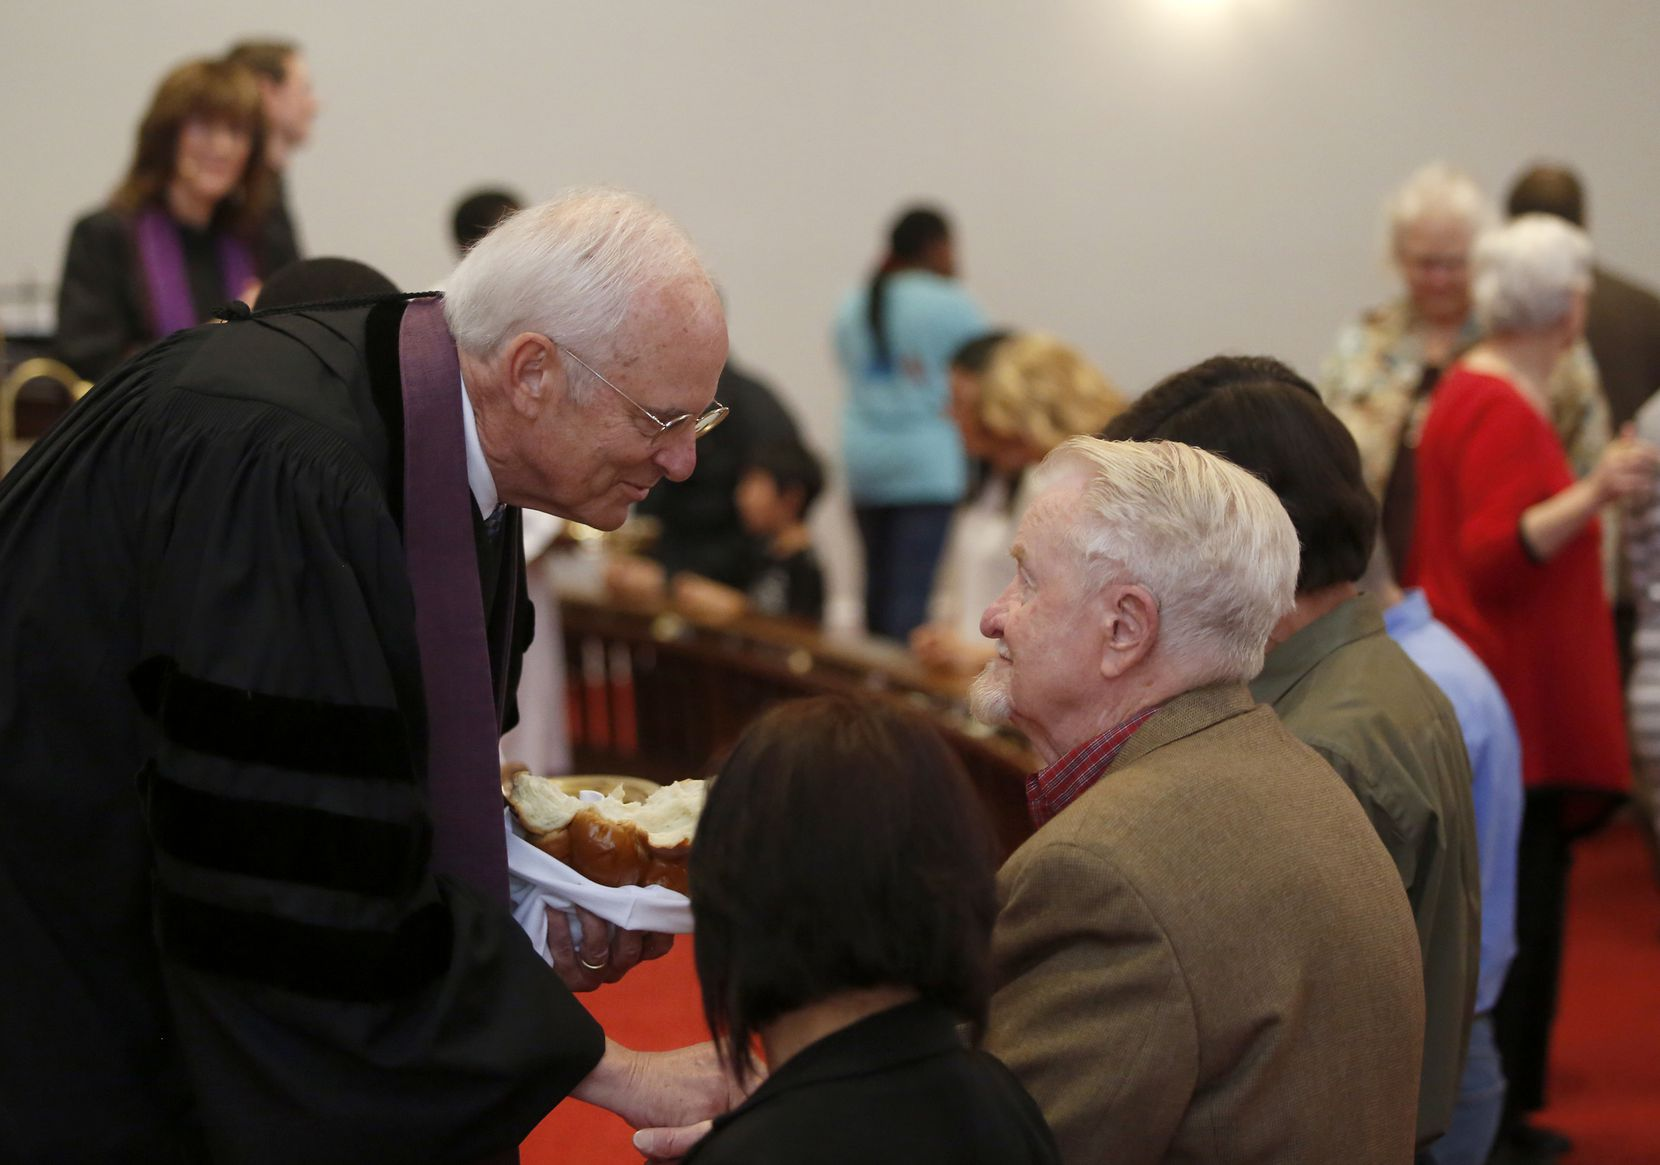 Bill Bryan serves communion at Dallas' Grace United Methodist Church, where he was pastor for more than 12 years. (Guy Reynolds/Staff Photographer)